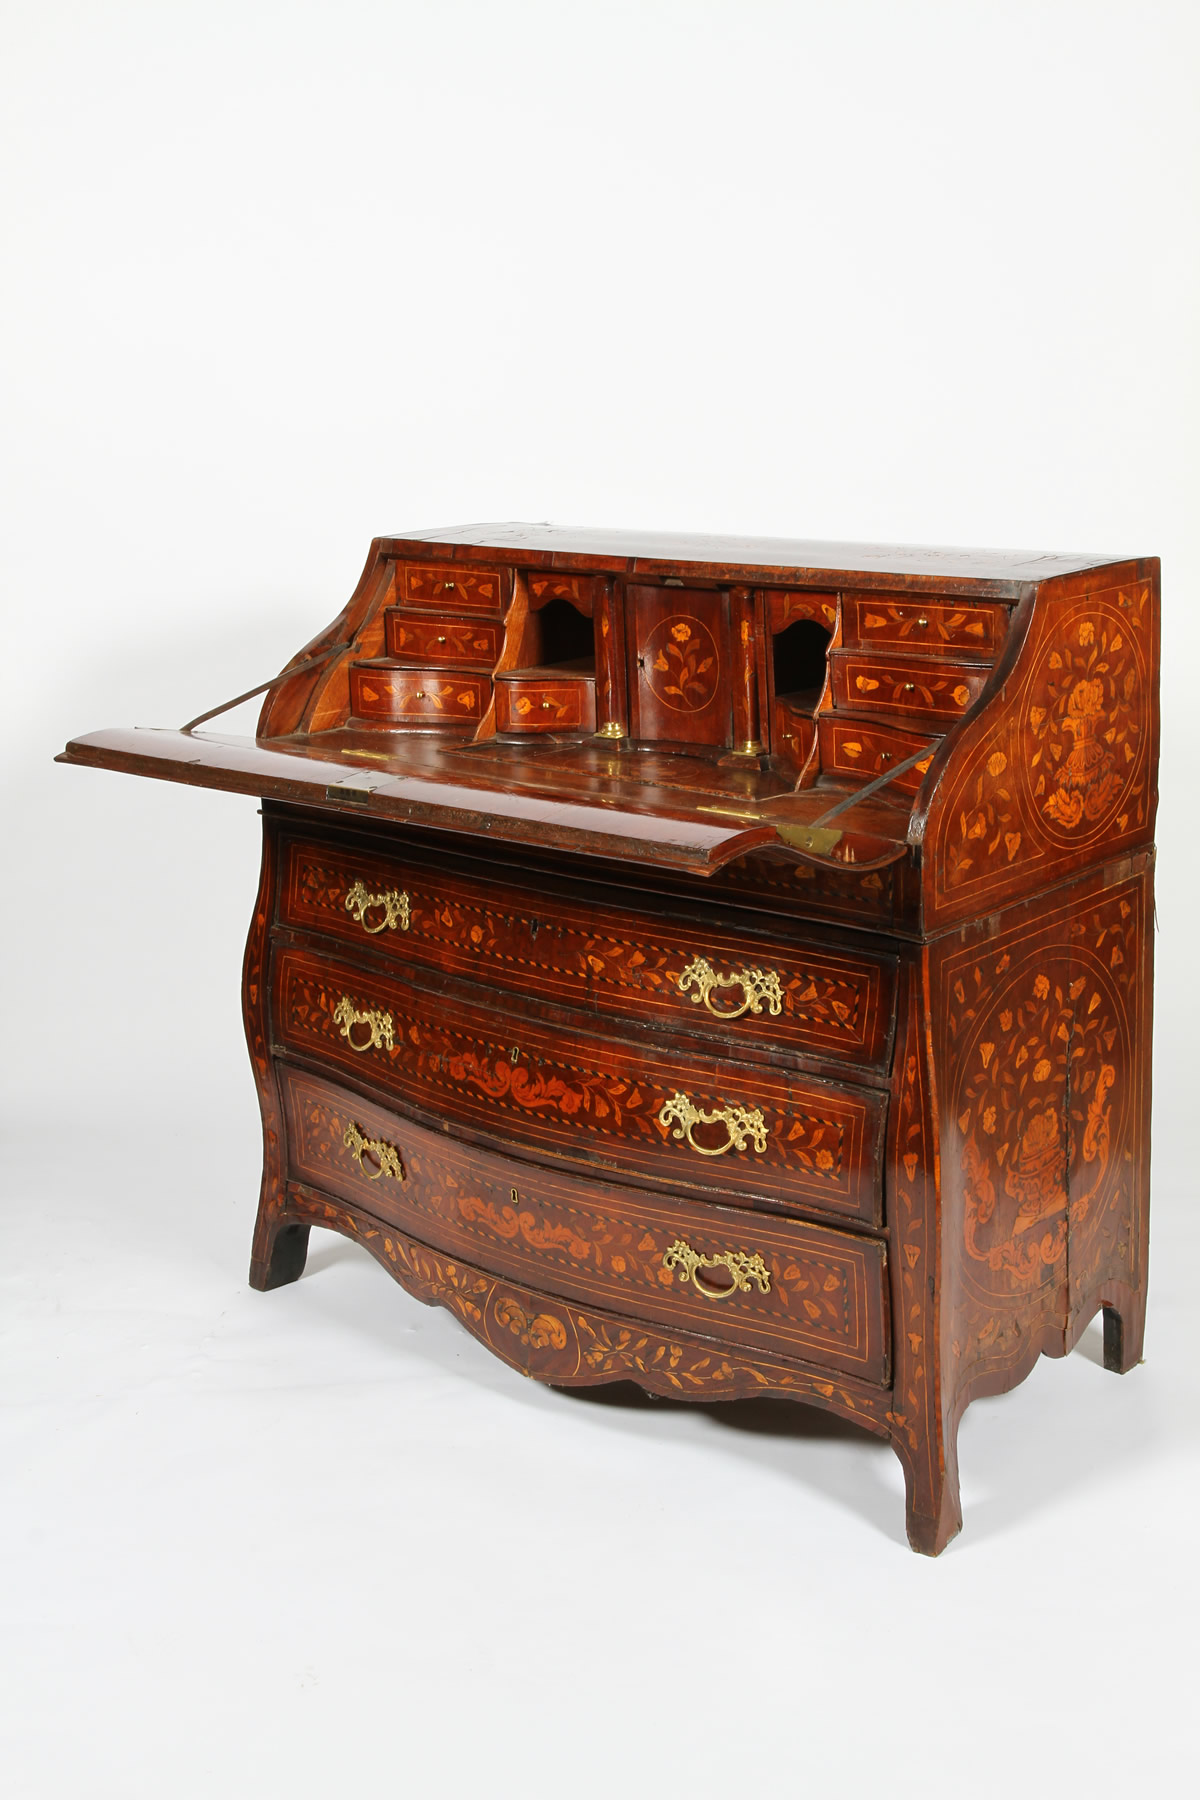 18th Century dutch bureau sold £3600.jpg